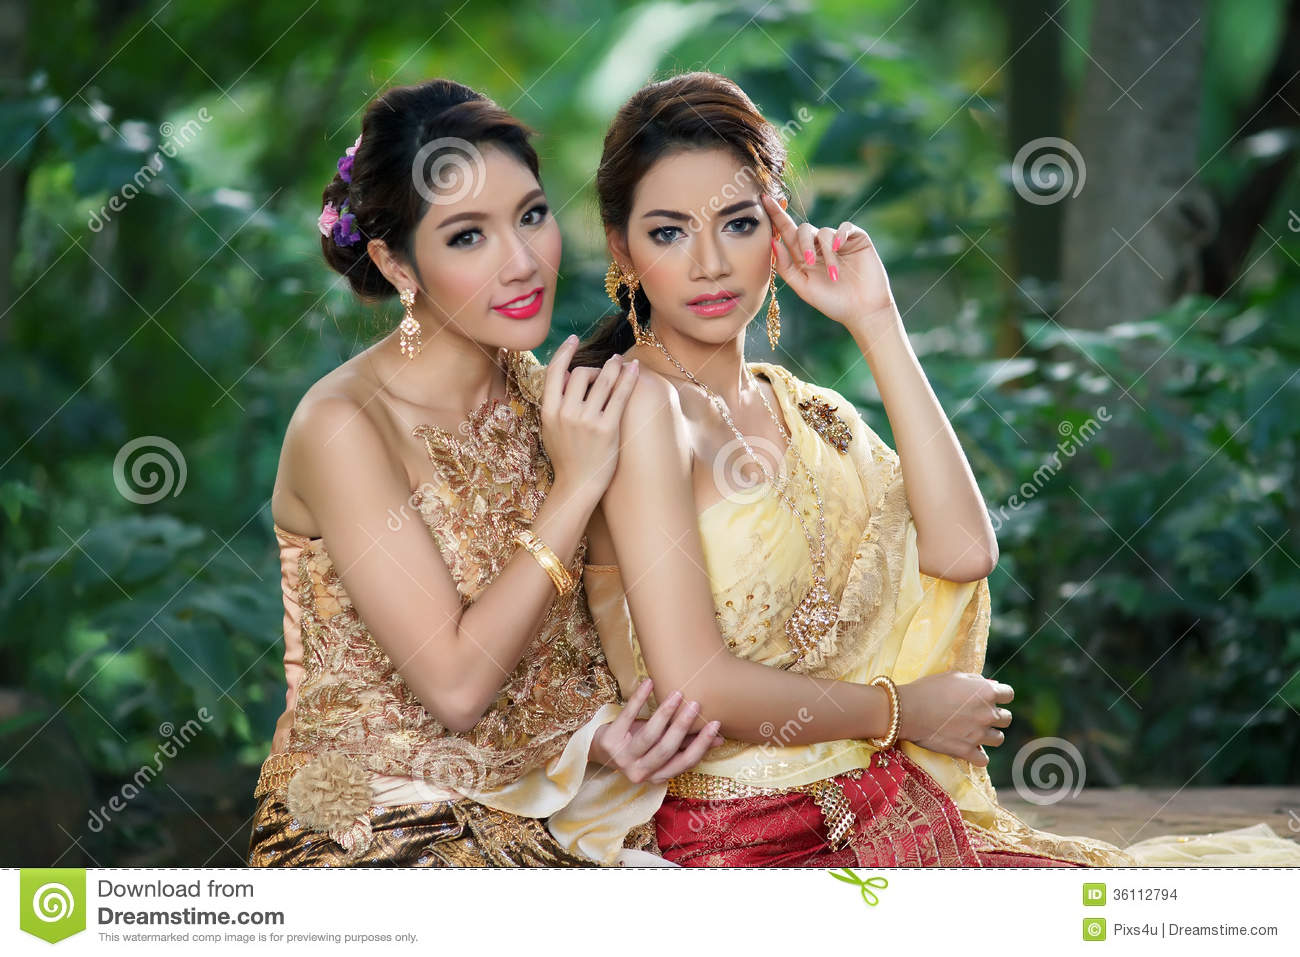 dating thai girl culture How to find a thai girlfriend online every man should experience dating a thai girl at least once in my biggest culture shock when i came to thailand the.